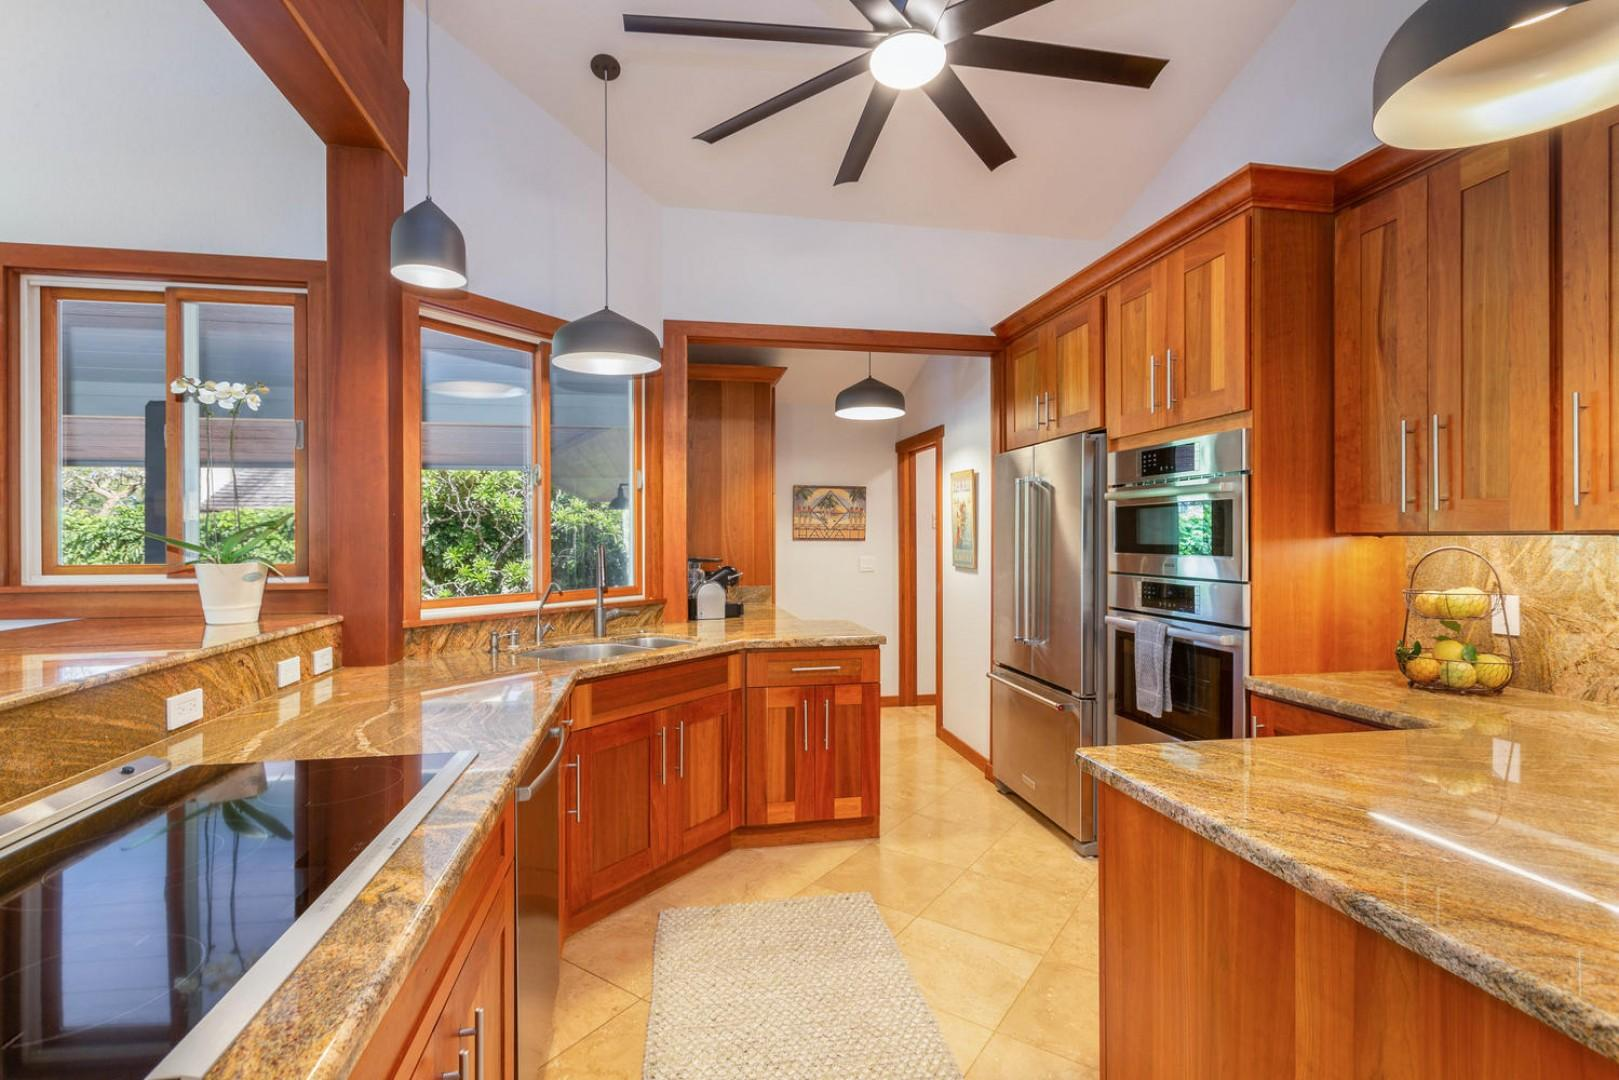 Beautiful cabinetry and stainless appliances